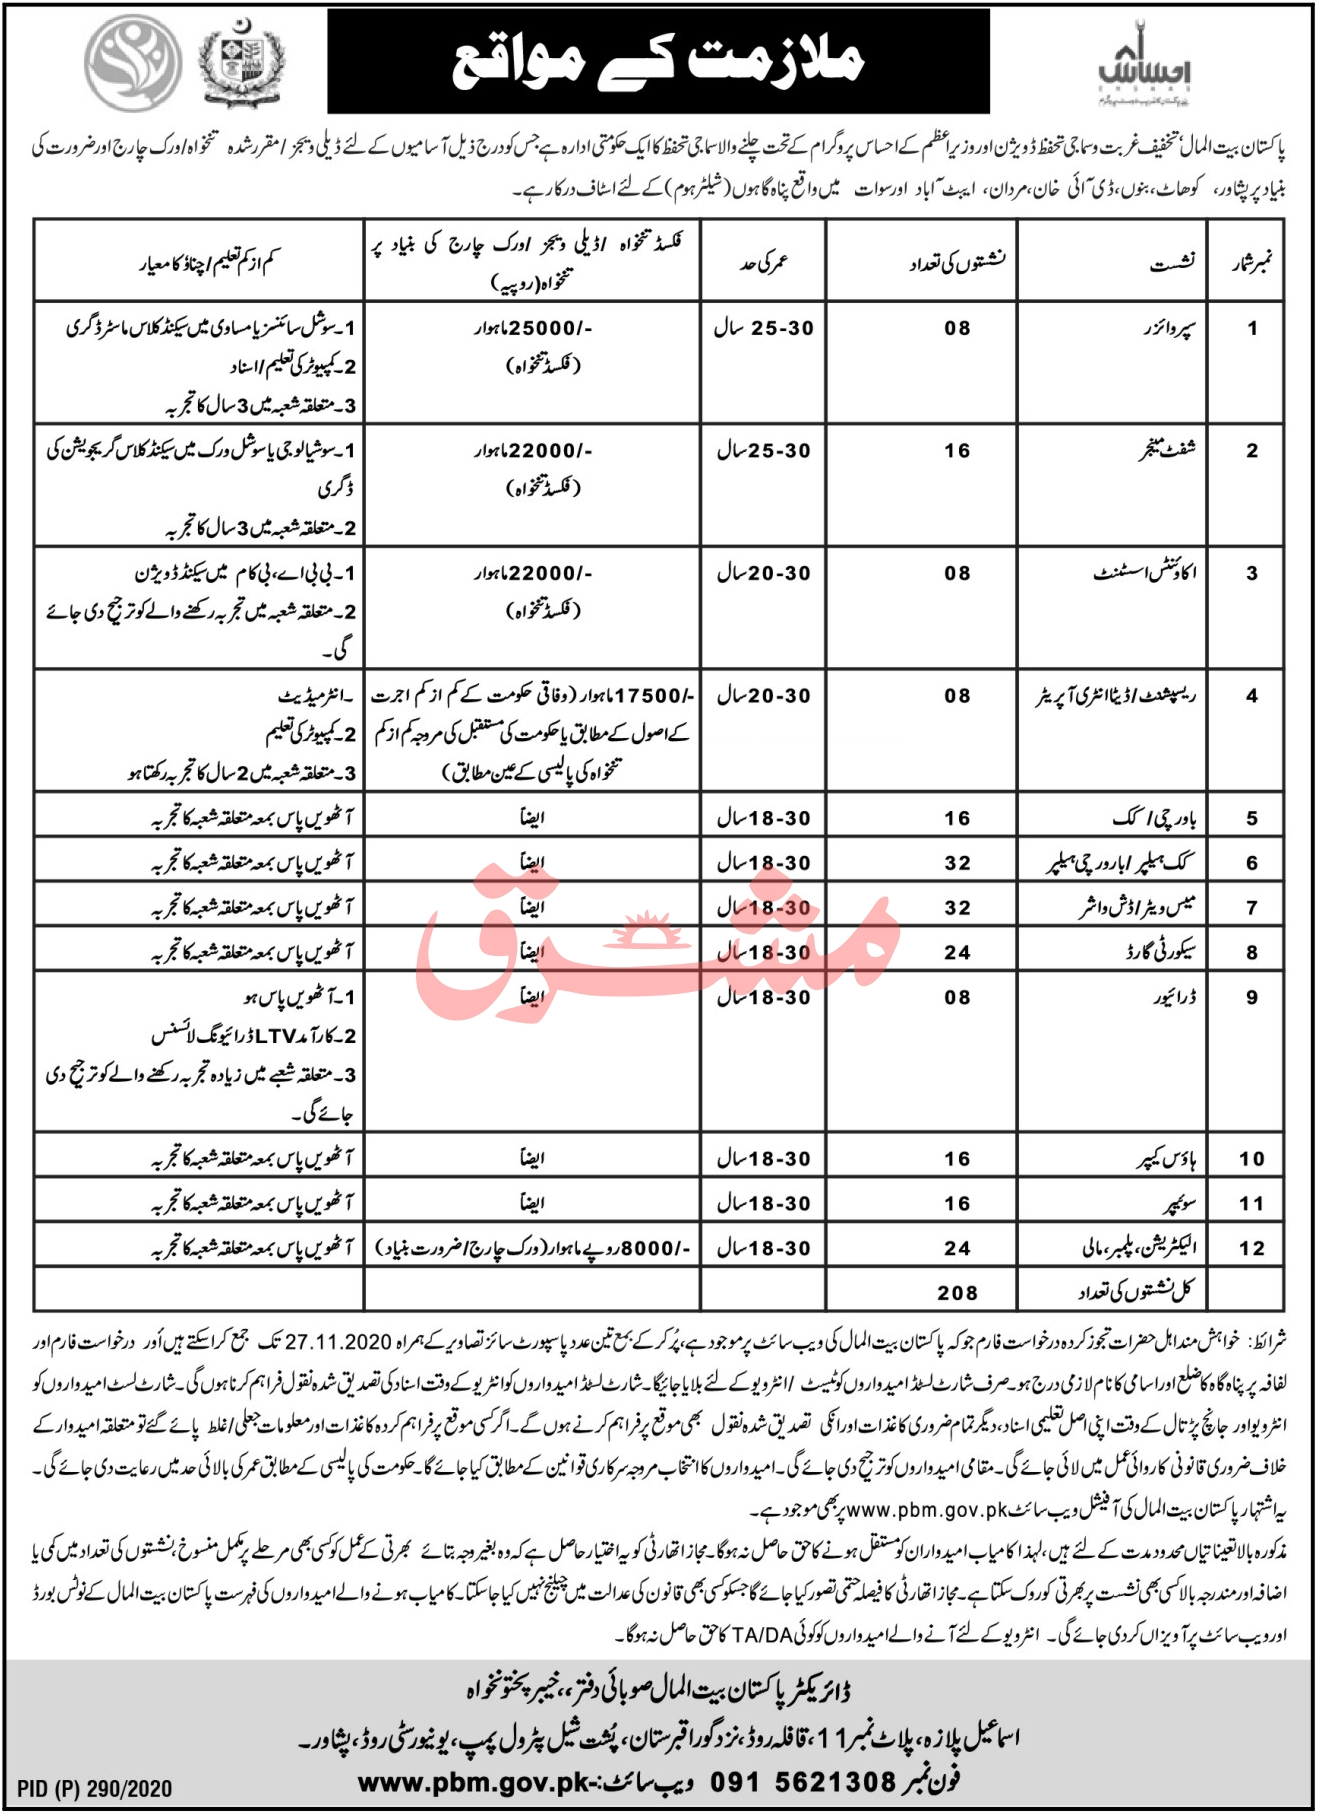 Pakistan Bait ul Mal Jobs November 2020